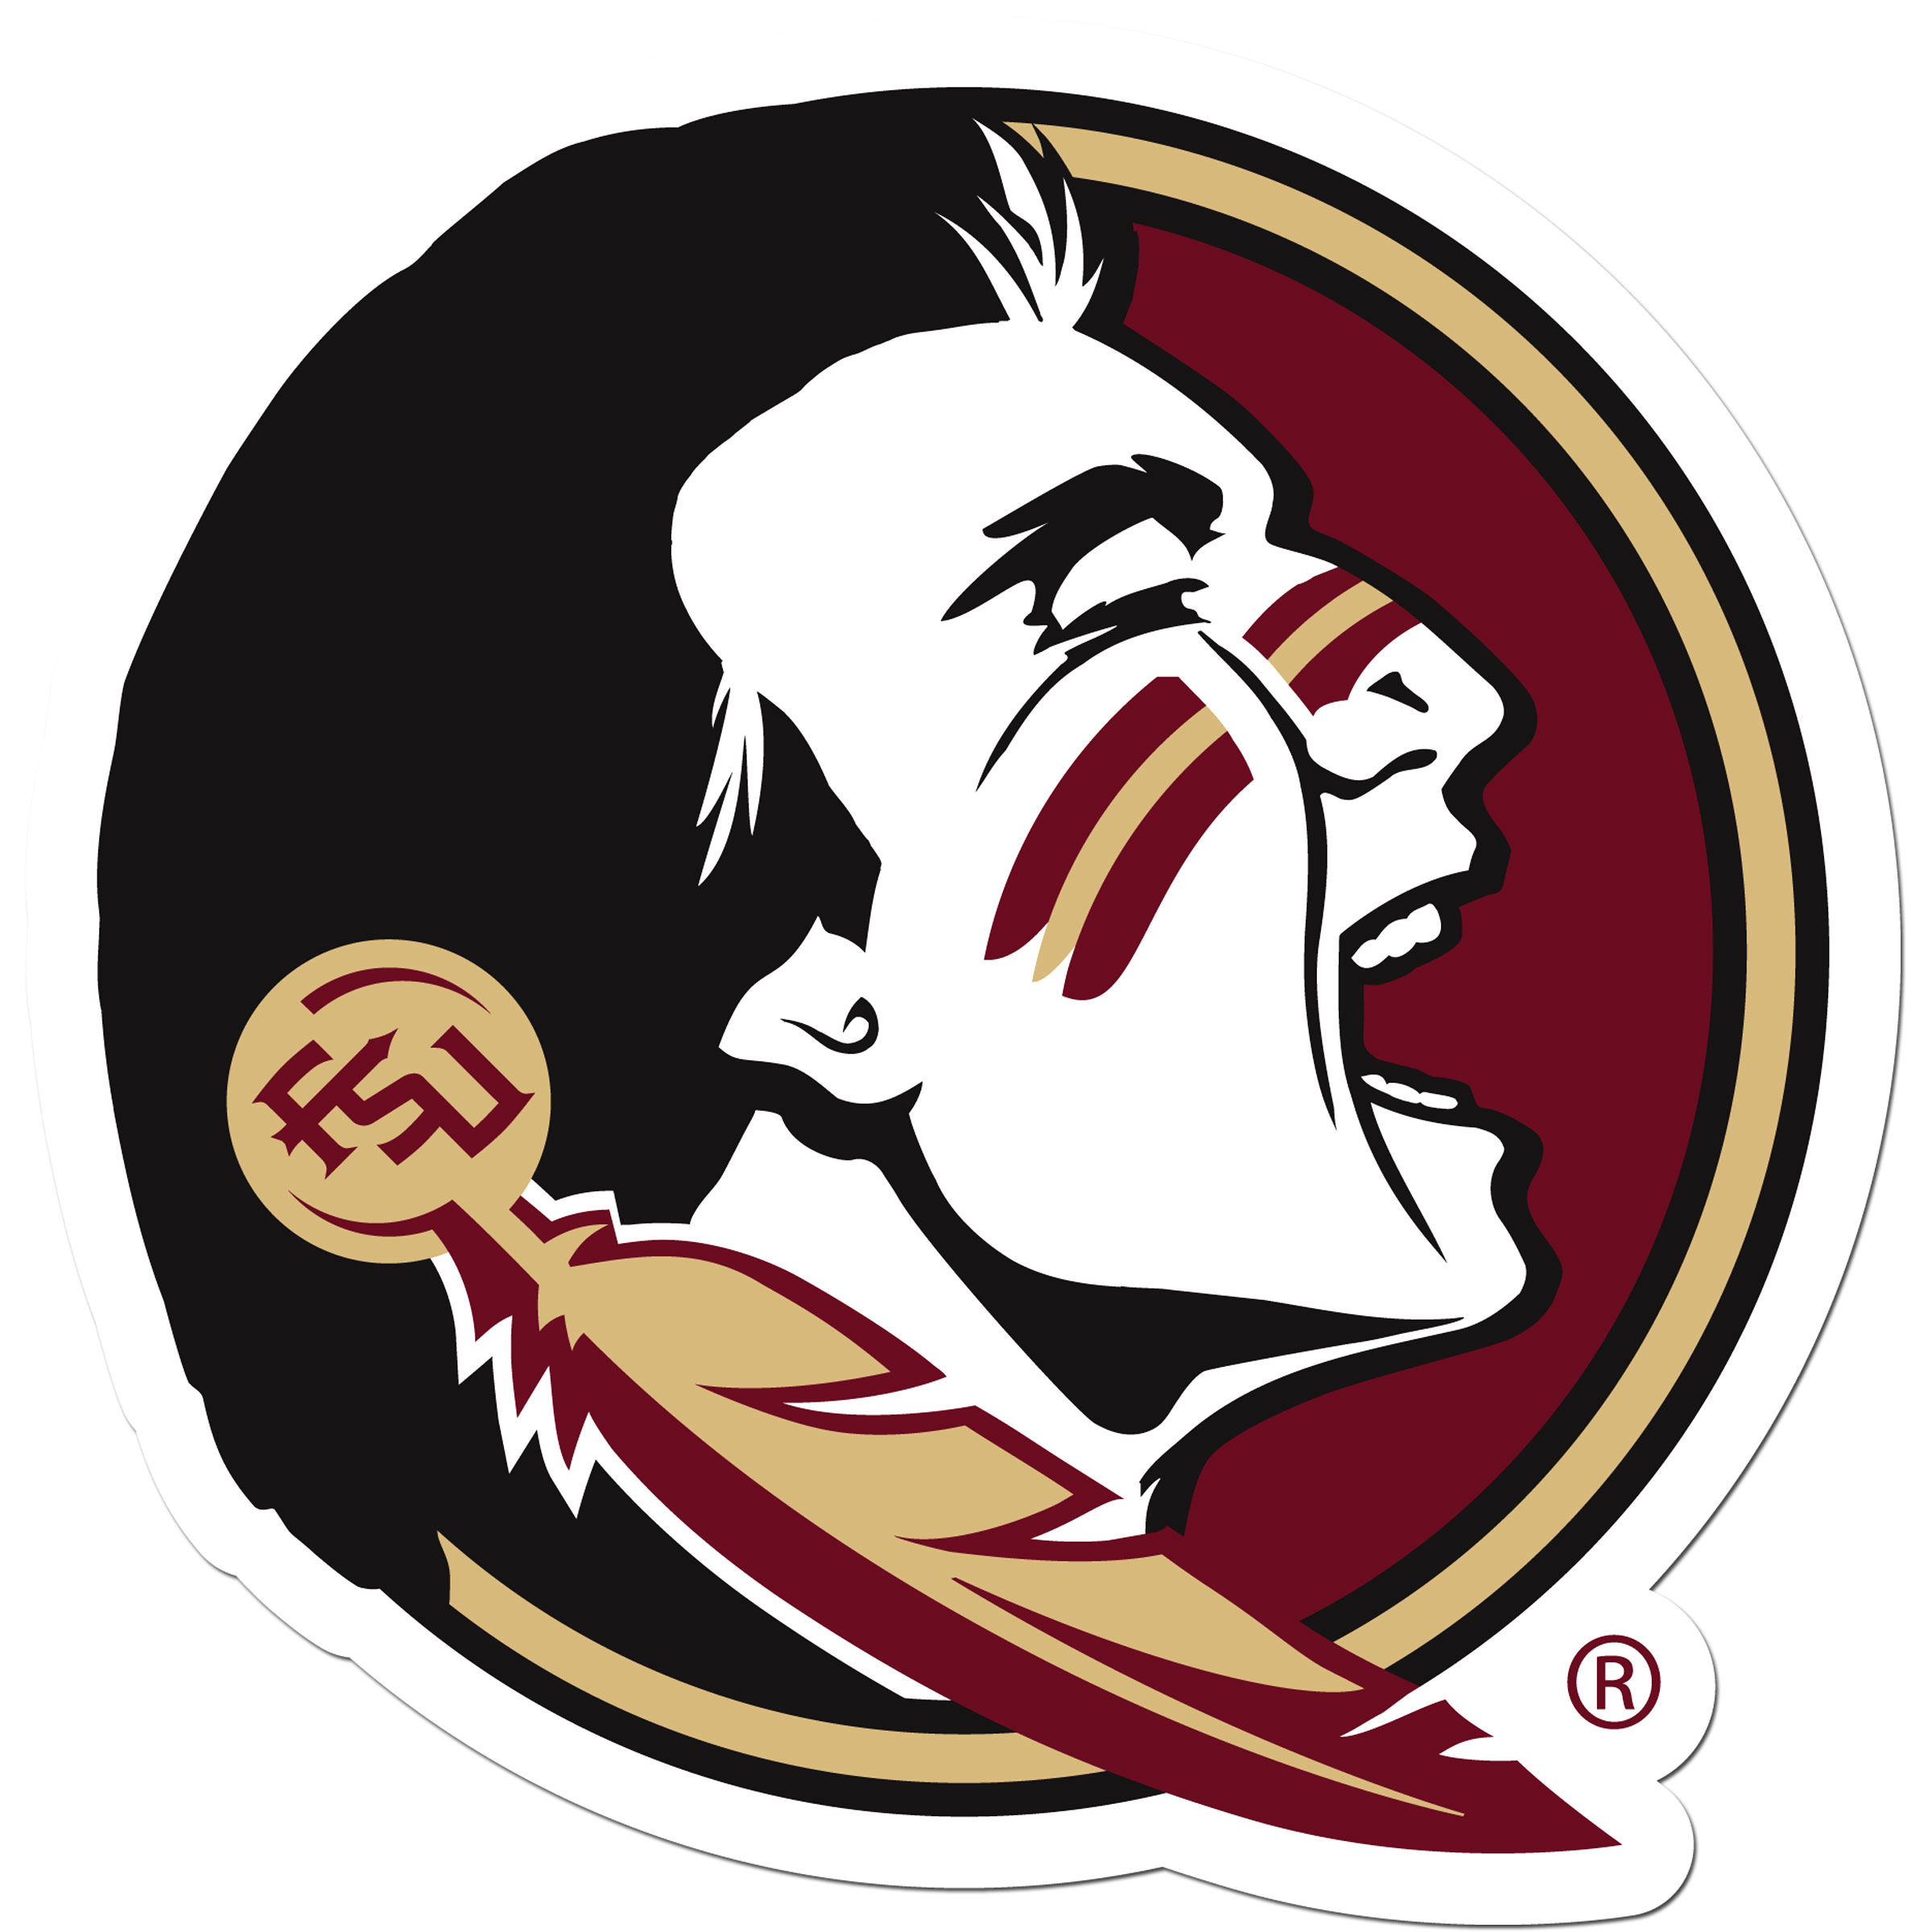 Florida St. Seminoles 8 inch Auto Decal - This bold, 8 inch Florida St. Seminoles is a great way to show off your team pride! The low tack vinyl decal is easily positioned and adjusted to make sure you get that logo in just the right spot on your vehicle. Designed to be used on the outside of the window.